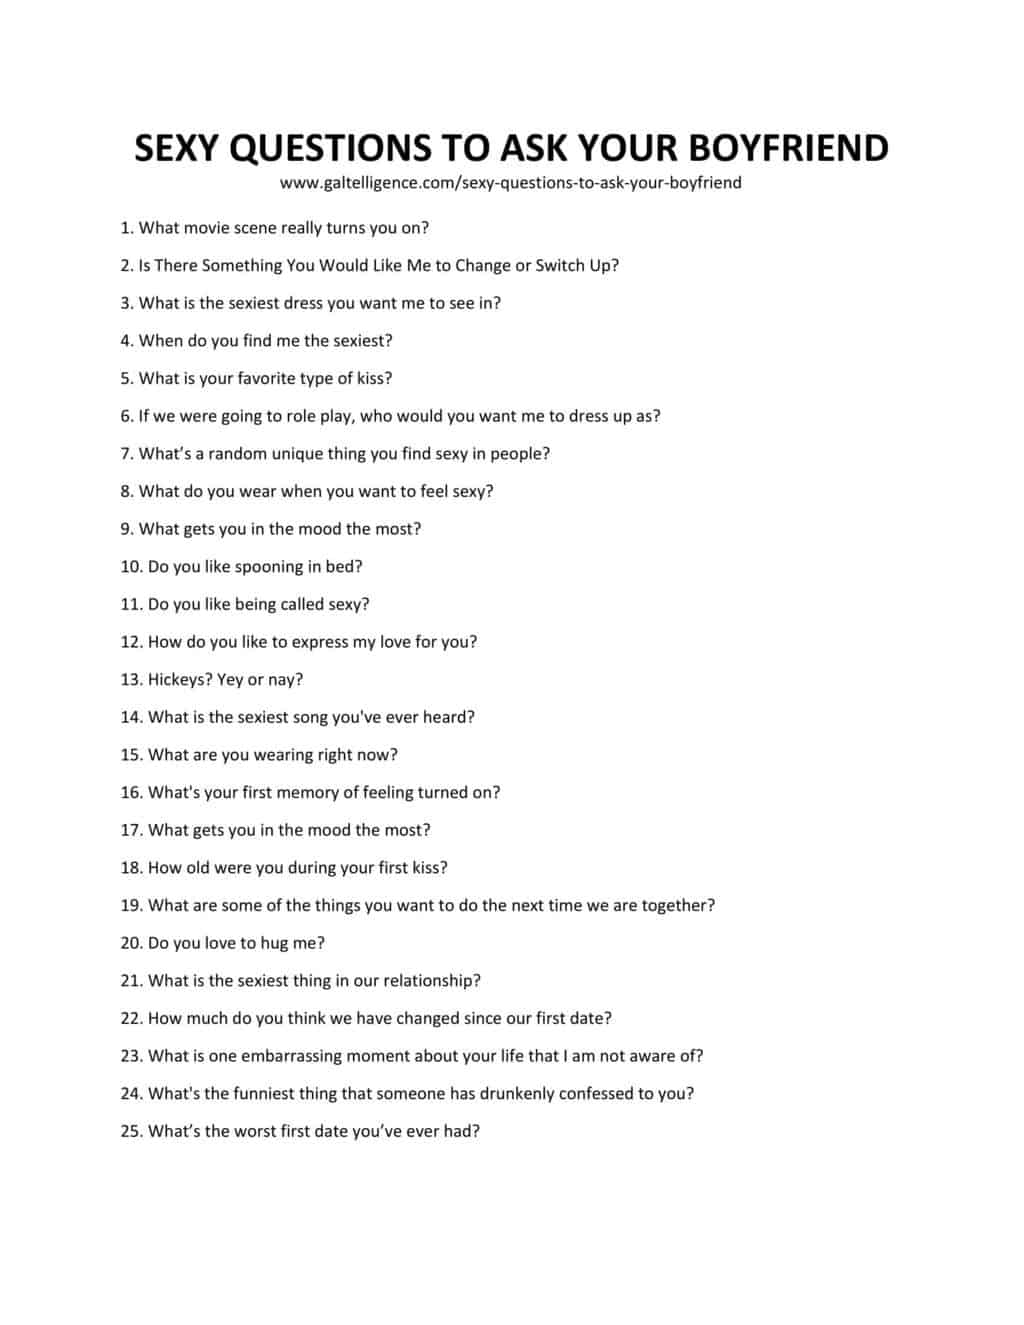 Downloadable List of Sexy Questions To Ask Your Boyfriend